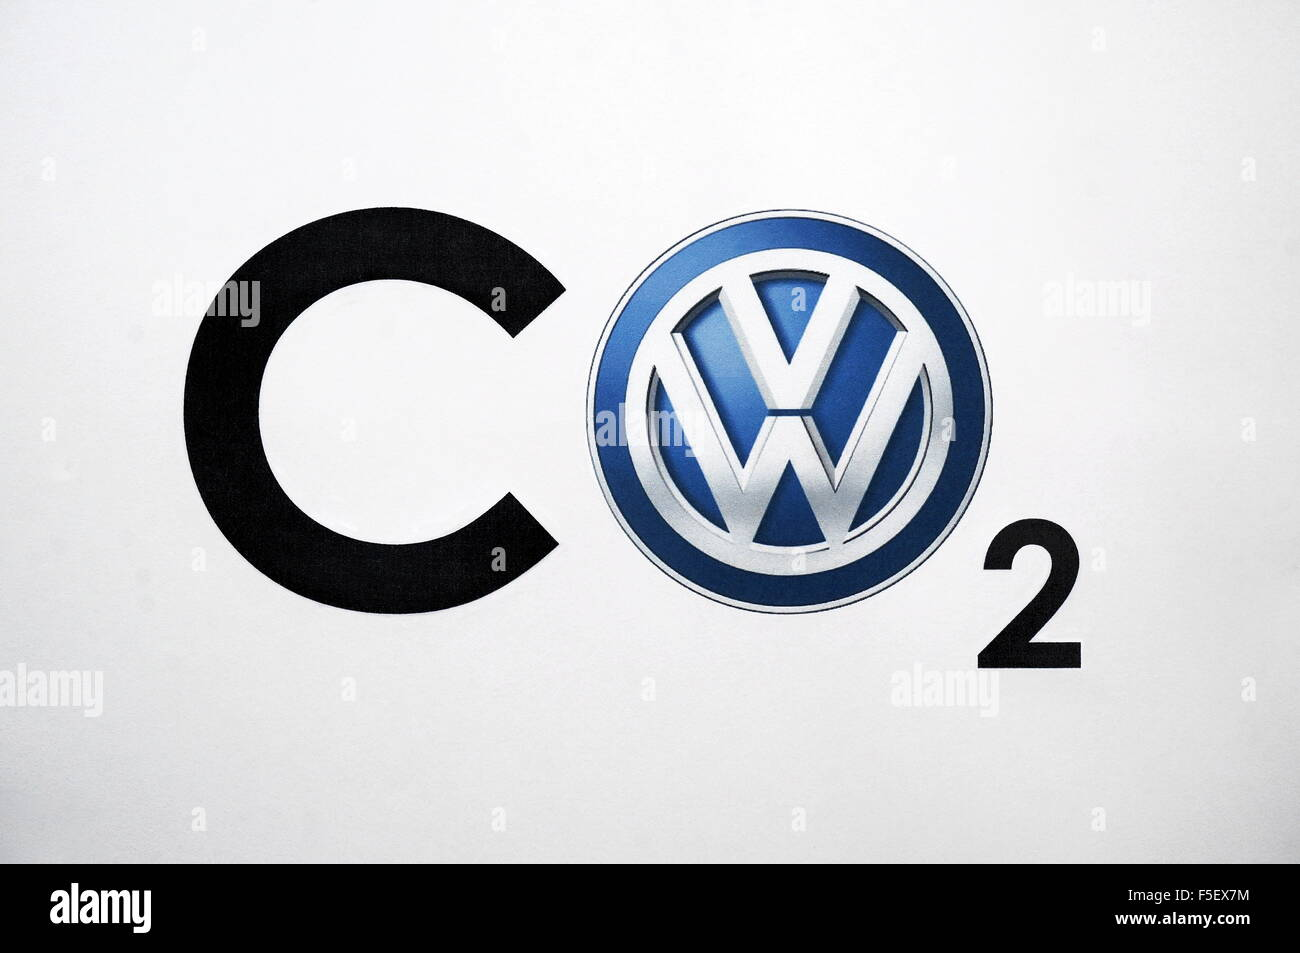 Illustration the vw logo replaces the letter o in the total illustration the vw logo replaces the letter o in the total formula co2 for carbon dioxide the photo was taken on 28 september 2015 buycottarizona Images